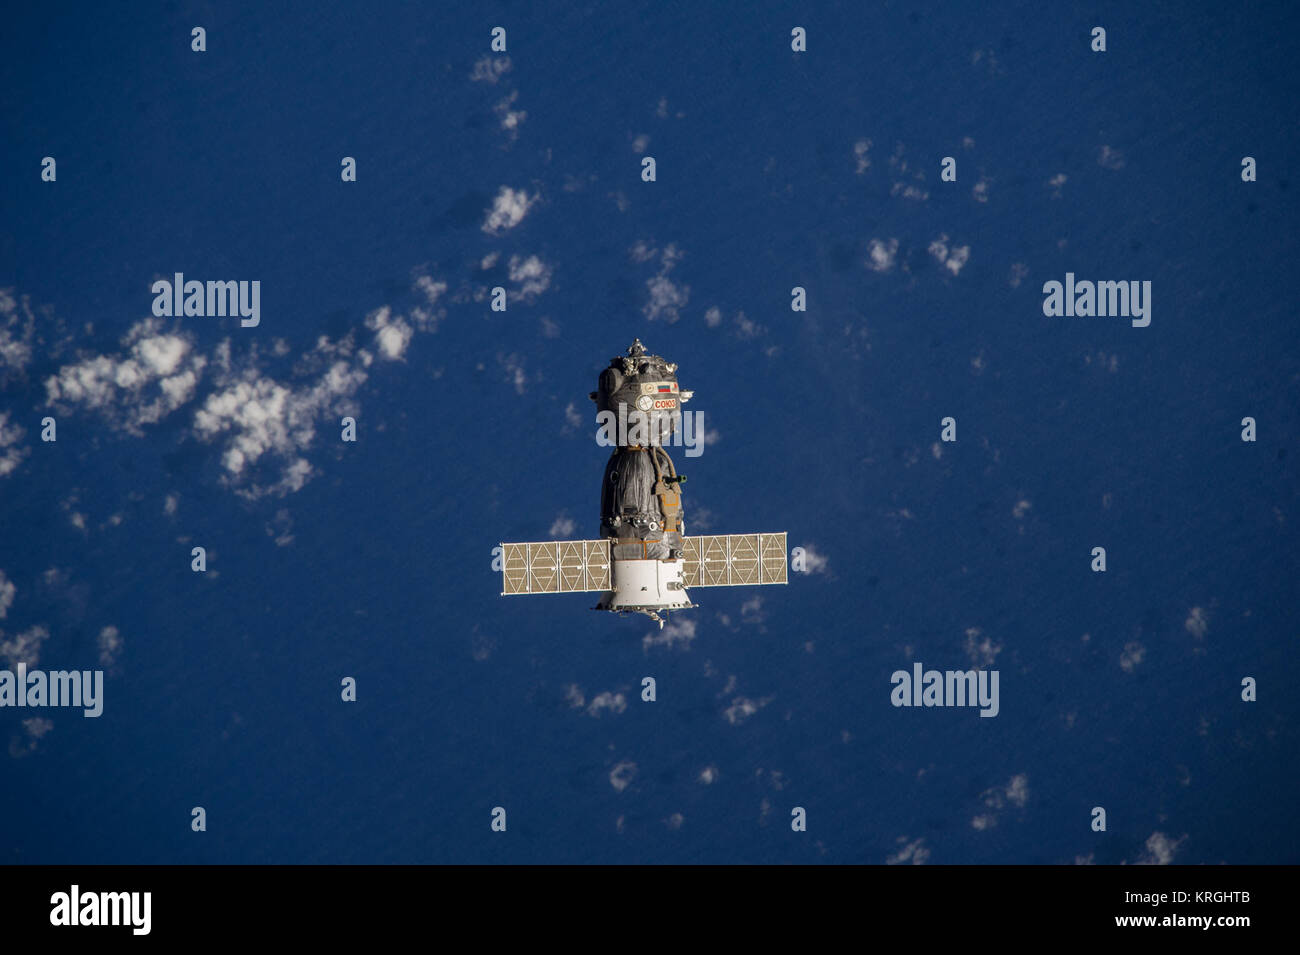 Soyuz TMA-10M spacecraft departs from the ISS - Stock Image